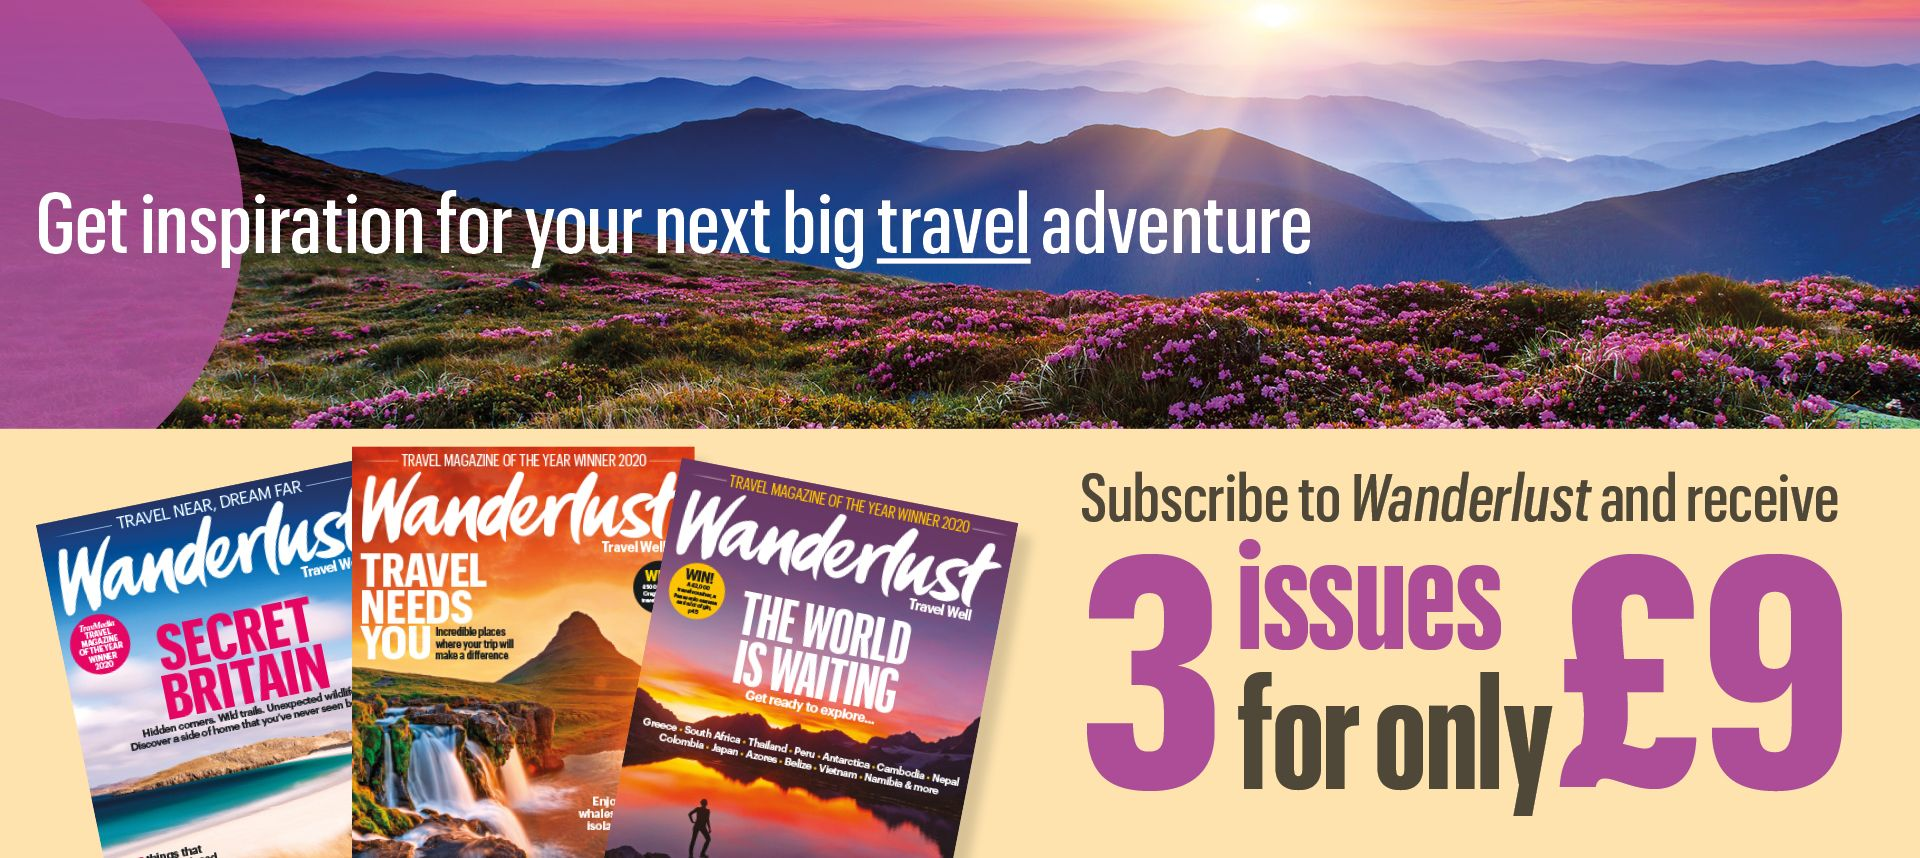 Subscribe to Wanderlust